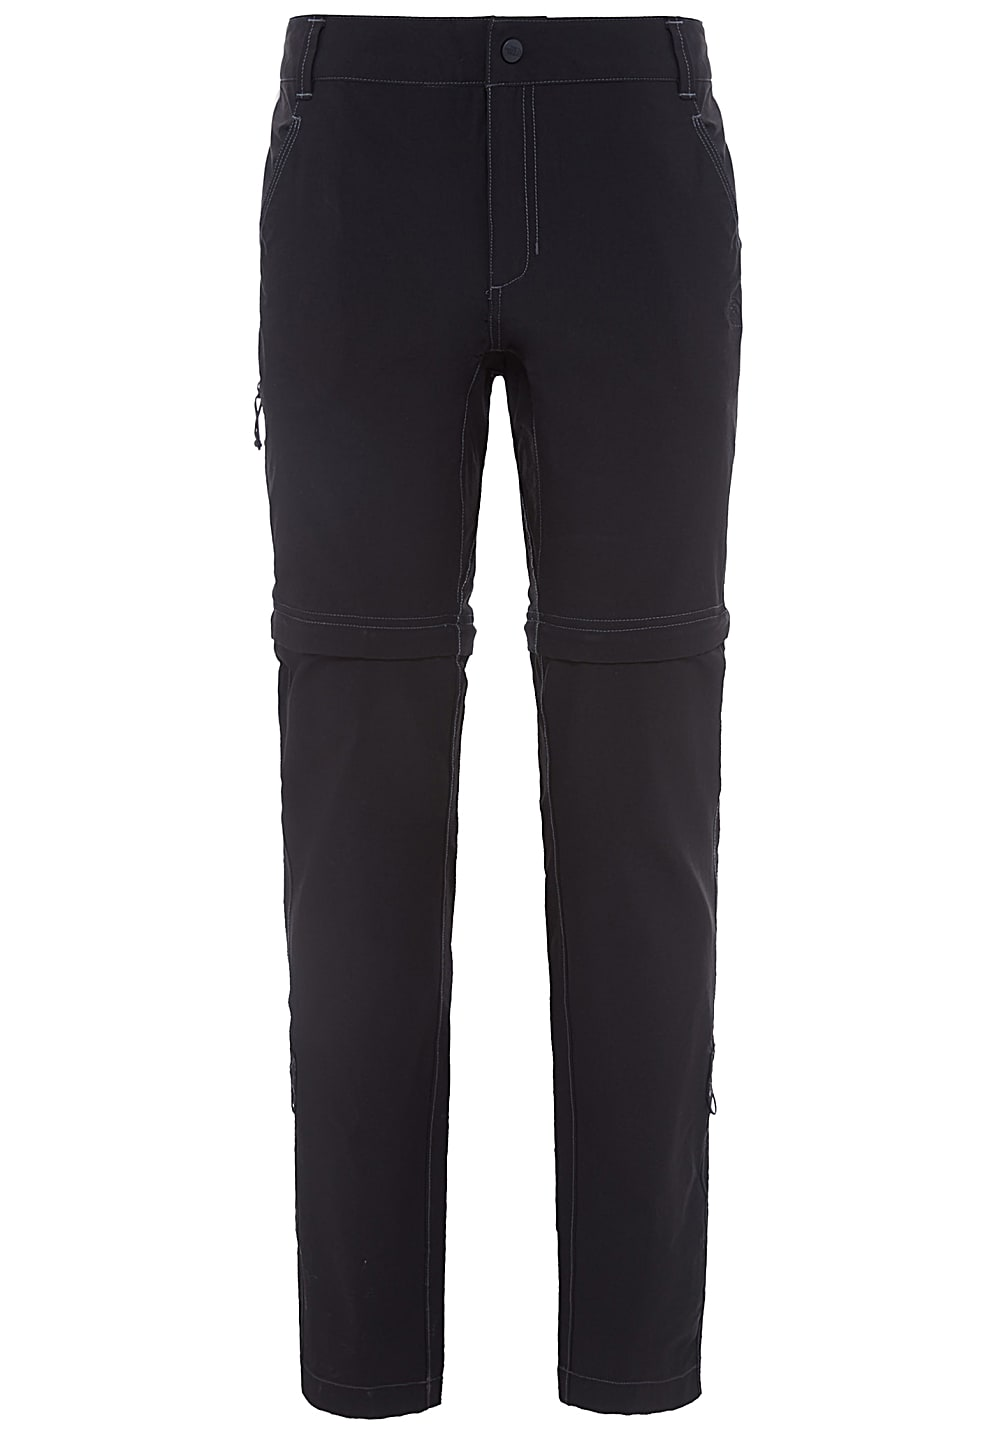 THE NORTH FACE Exploration Convertible - Outdoorhose für Damen - Schwarz